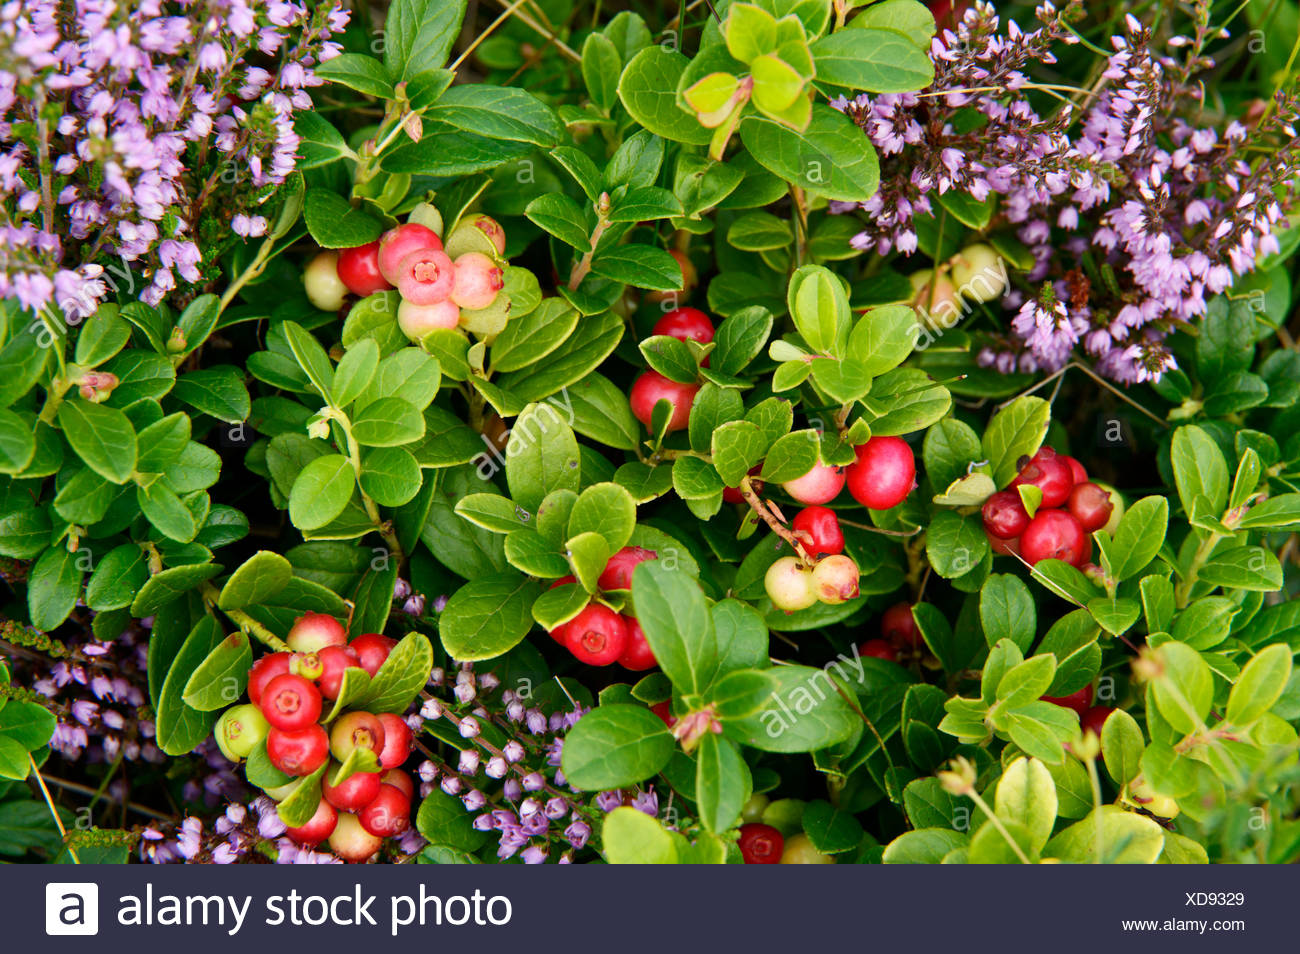 cowberry, foxberry, lingonberry, mountain cranberry (Vaccinium vitis-idaea), fruiting among blooming heath, Germany, North Rhine-Westphalia, Hochheide Niedersfeld - Stock Image